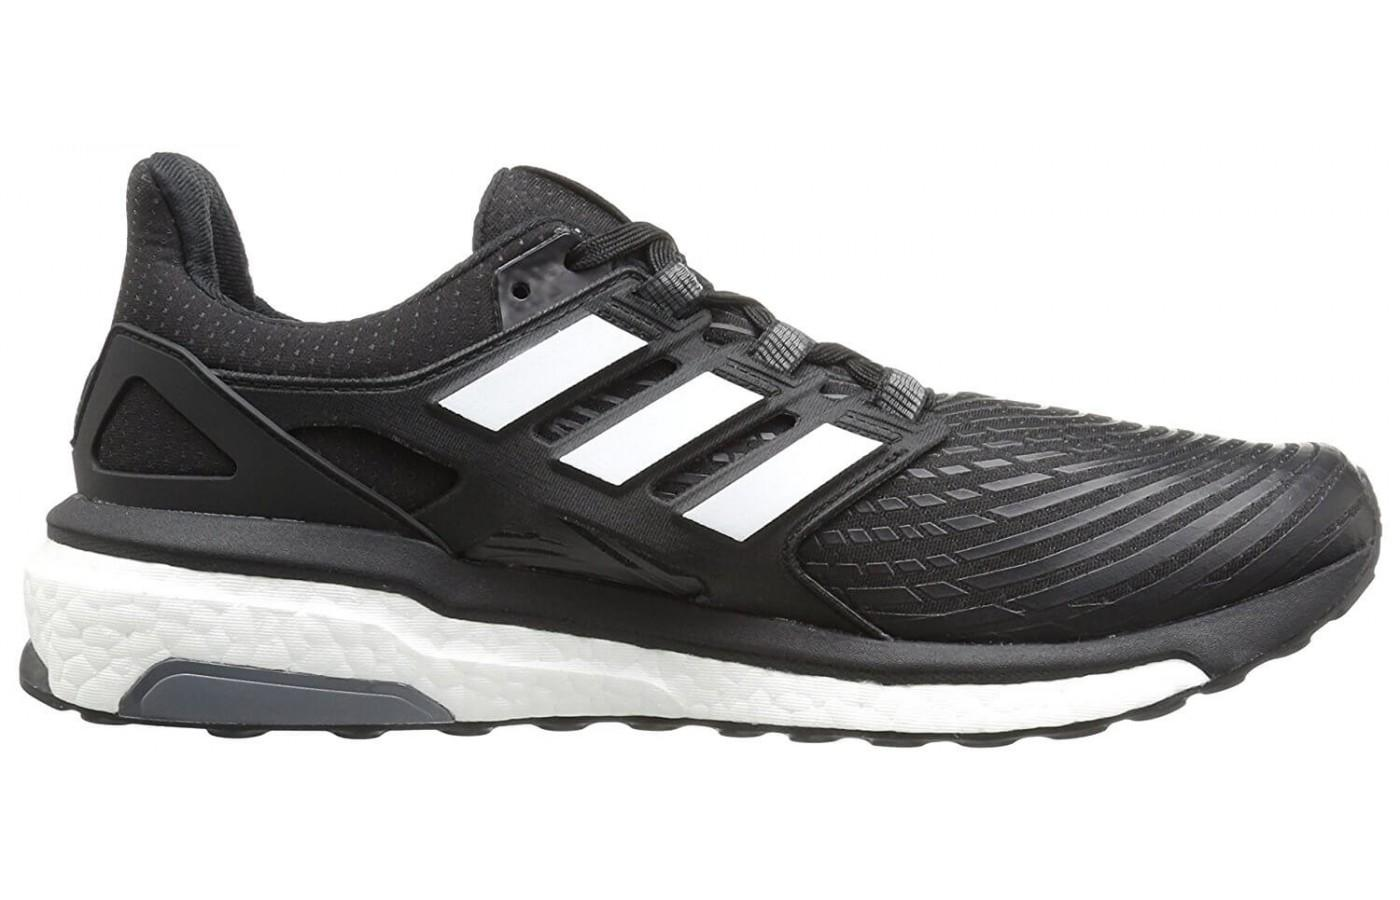 the Adidas Energy Boost has soft cushioning in the heel